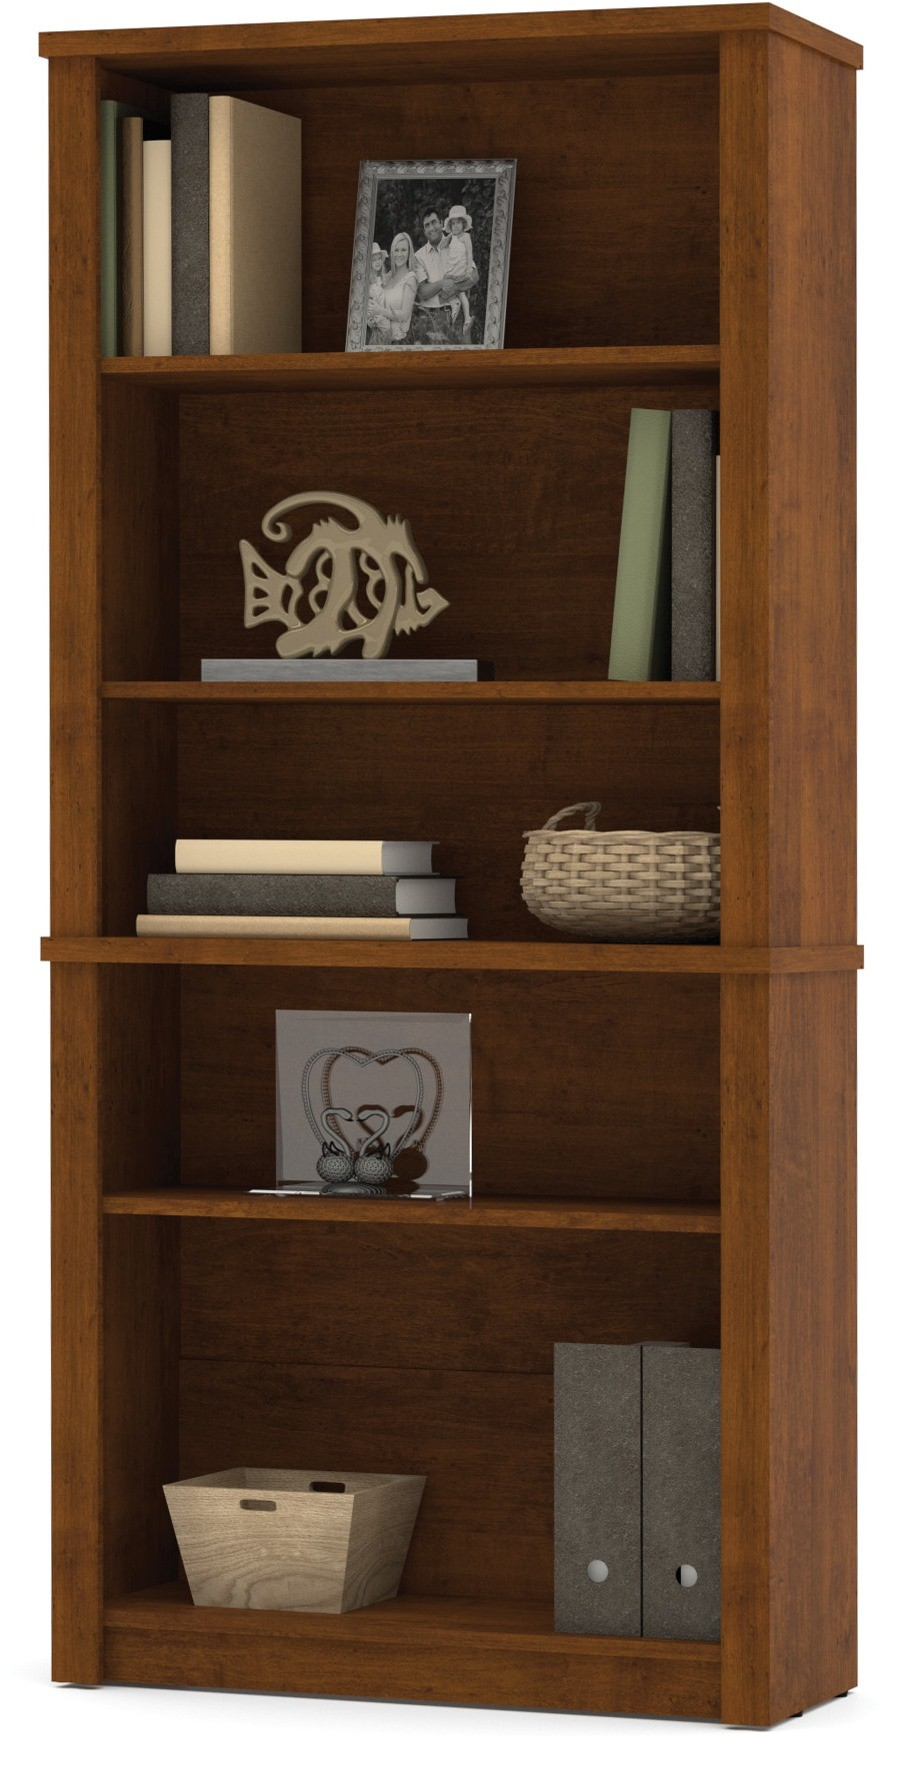 Embassy Modular Bookcase In Tuscany Brown From Bestar